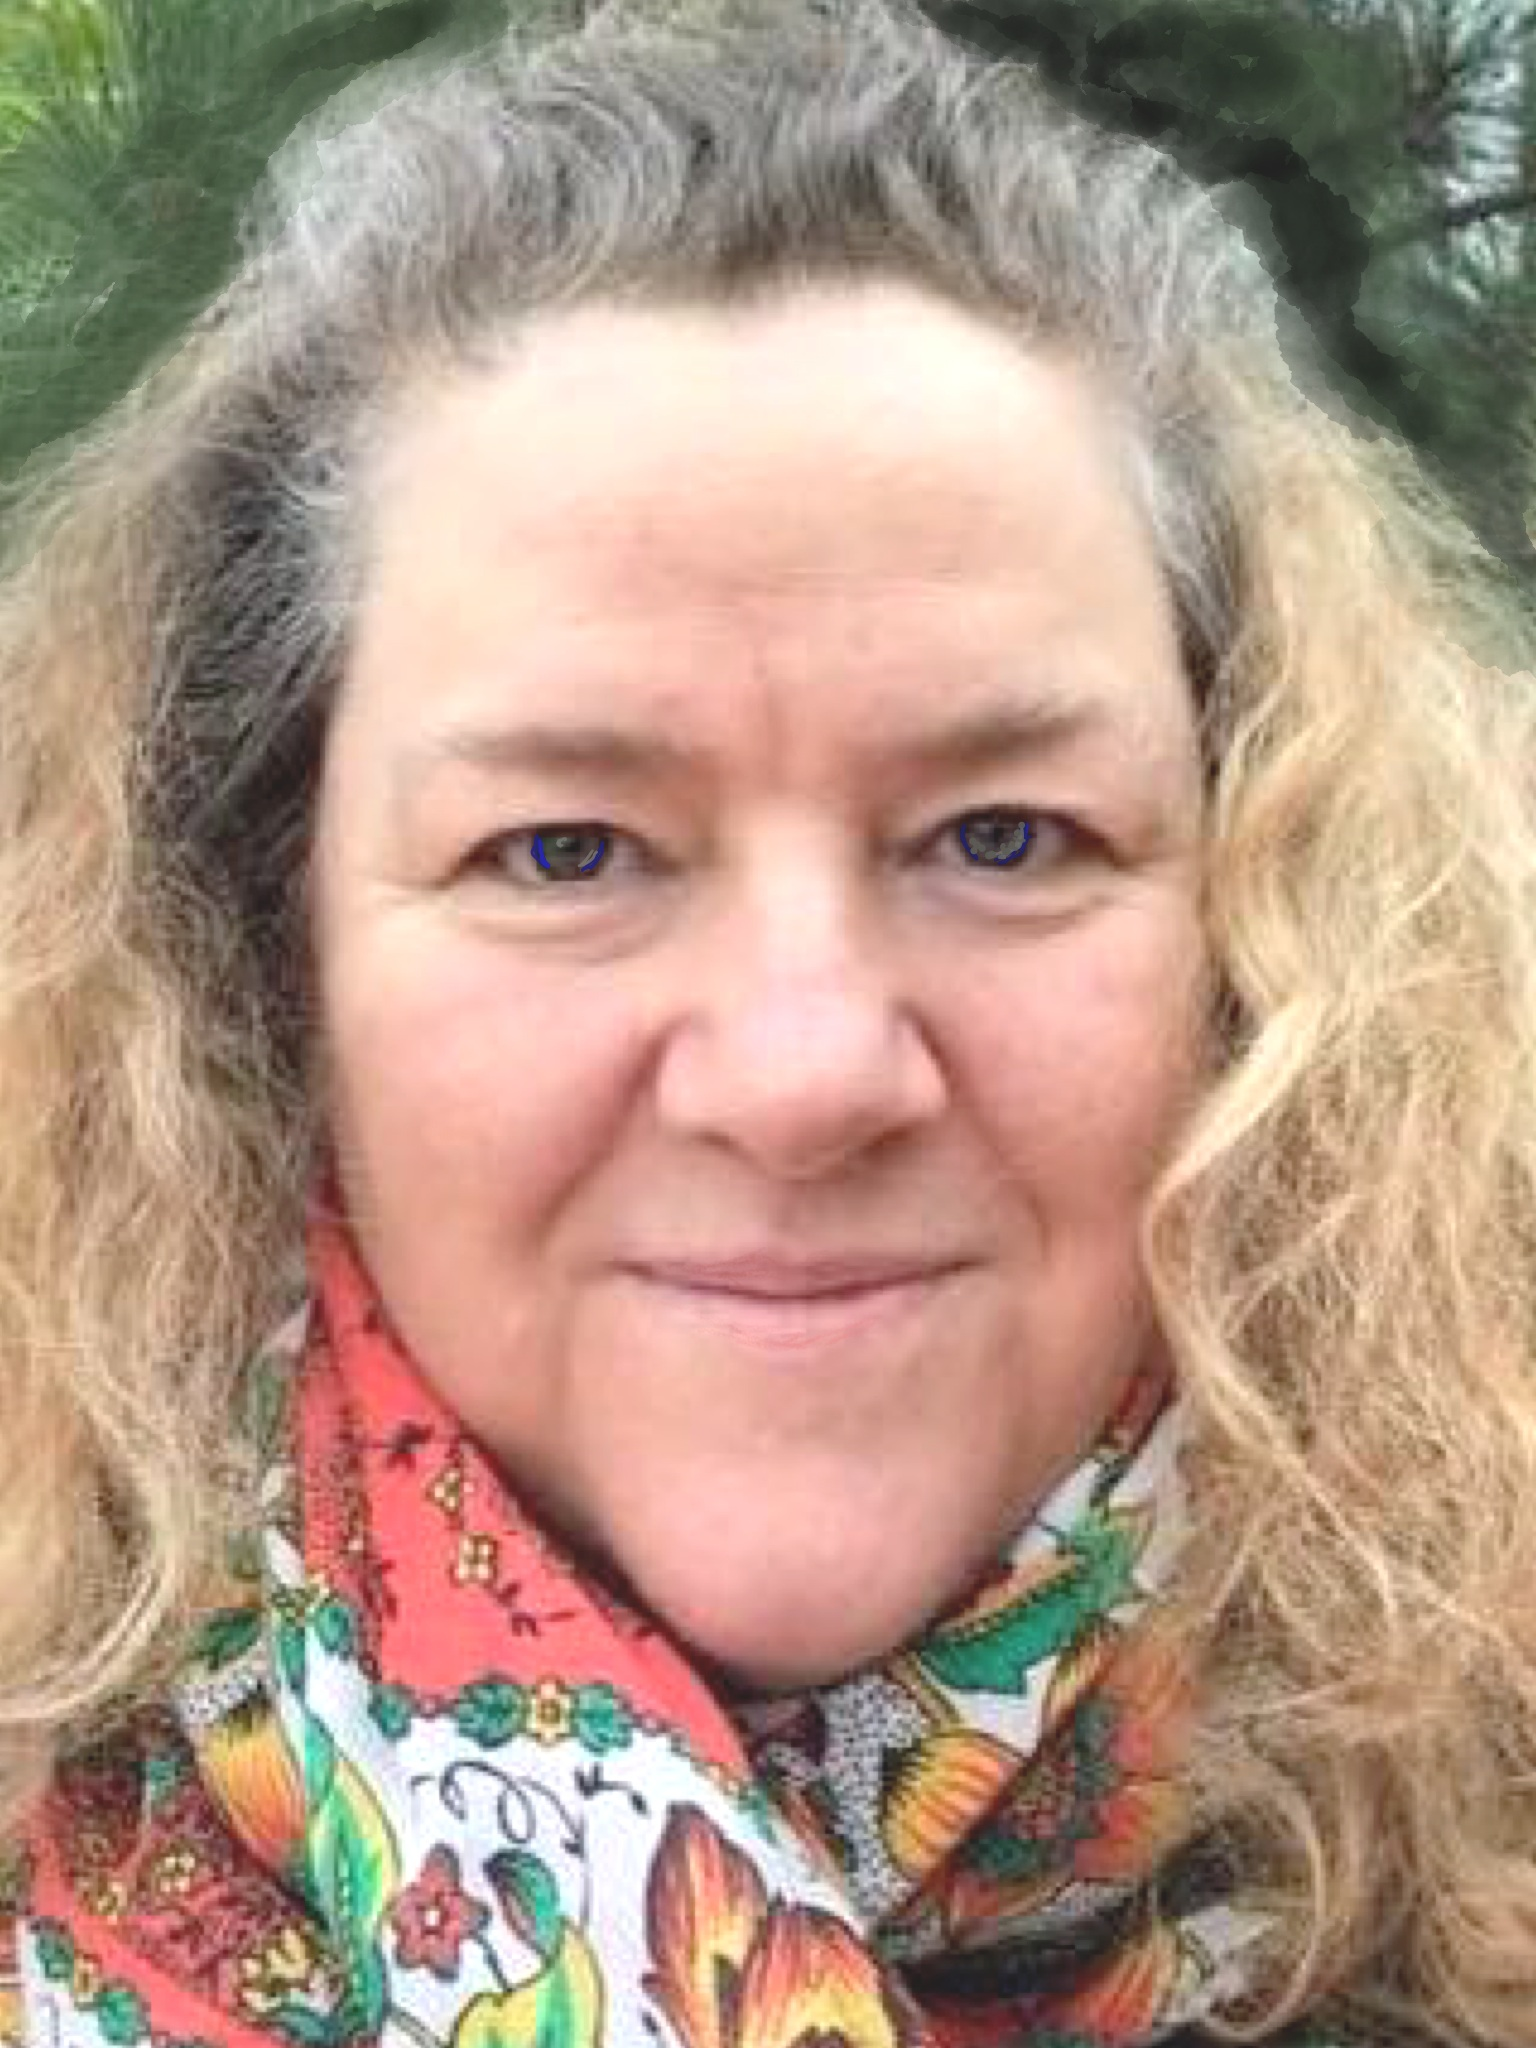 Meet Pomegranate - A Witch, Priestess, Psychic and Painter, she has taught witchcraft for for 35 years at magical intensives, workshops, conferences and Mystery Schools around north America. Find her on facebook at Pomegranate Doyle or Ask Pomegranate. Currently she is developing Psychic